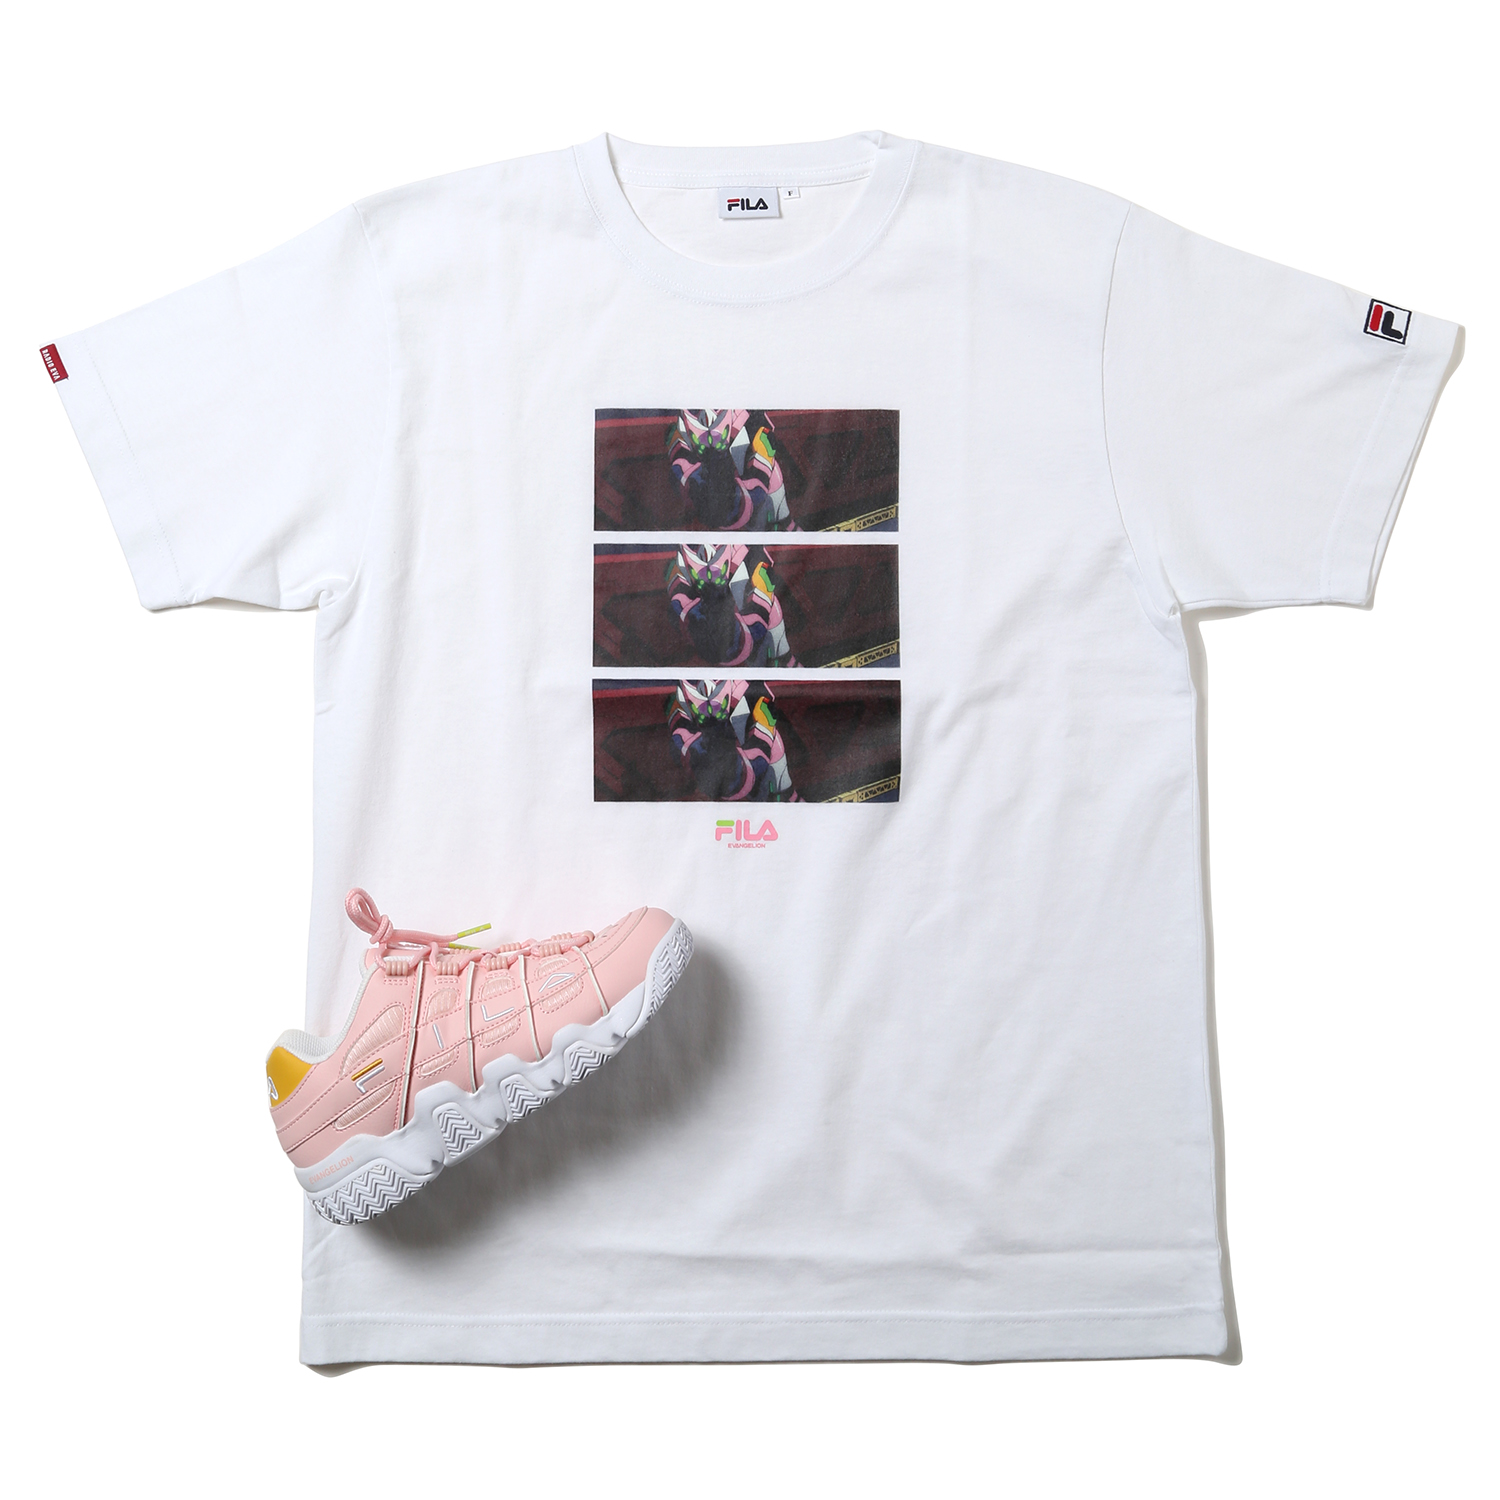 EVANGELION GRAPHIC T-Shirt by FILA (WHITE (エヴァンゲリオン 8号機))